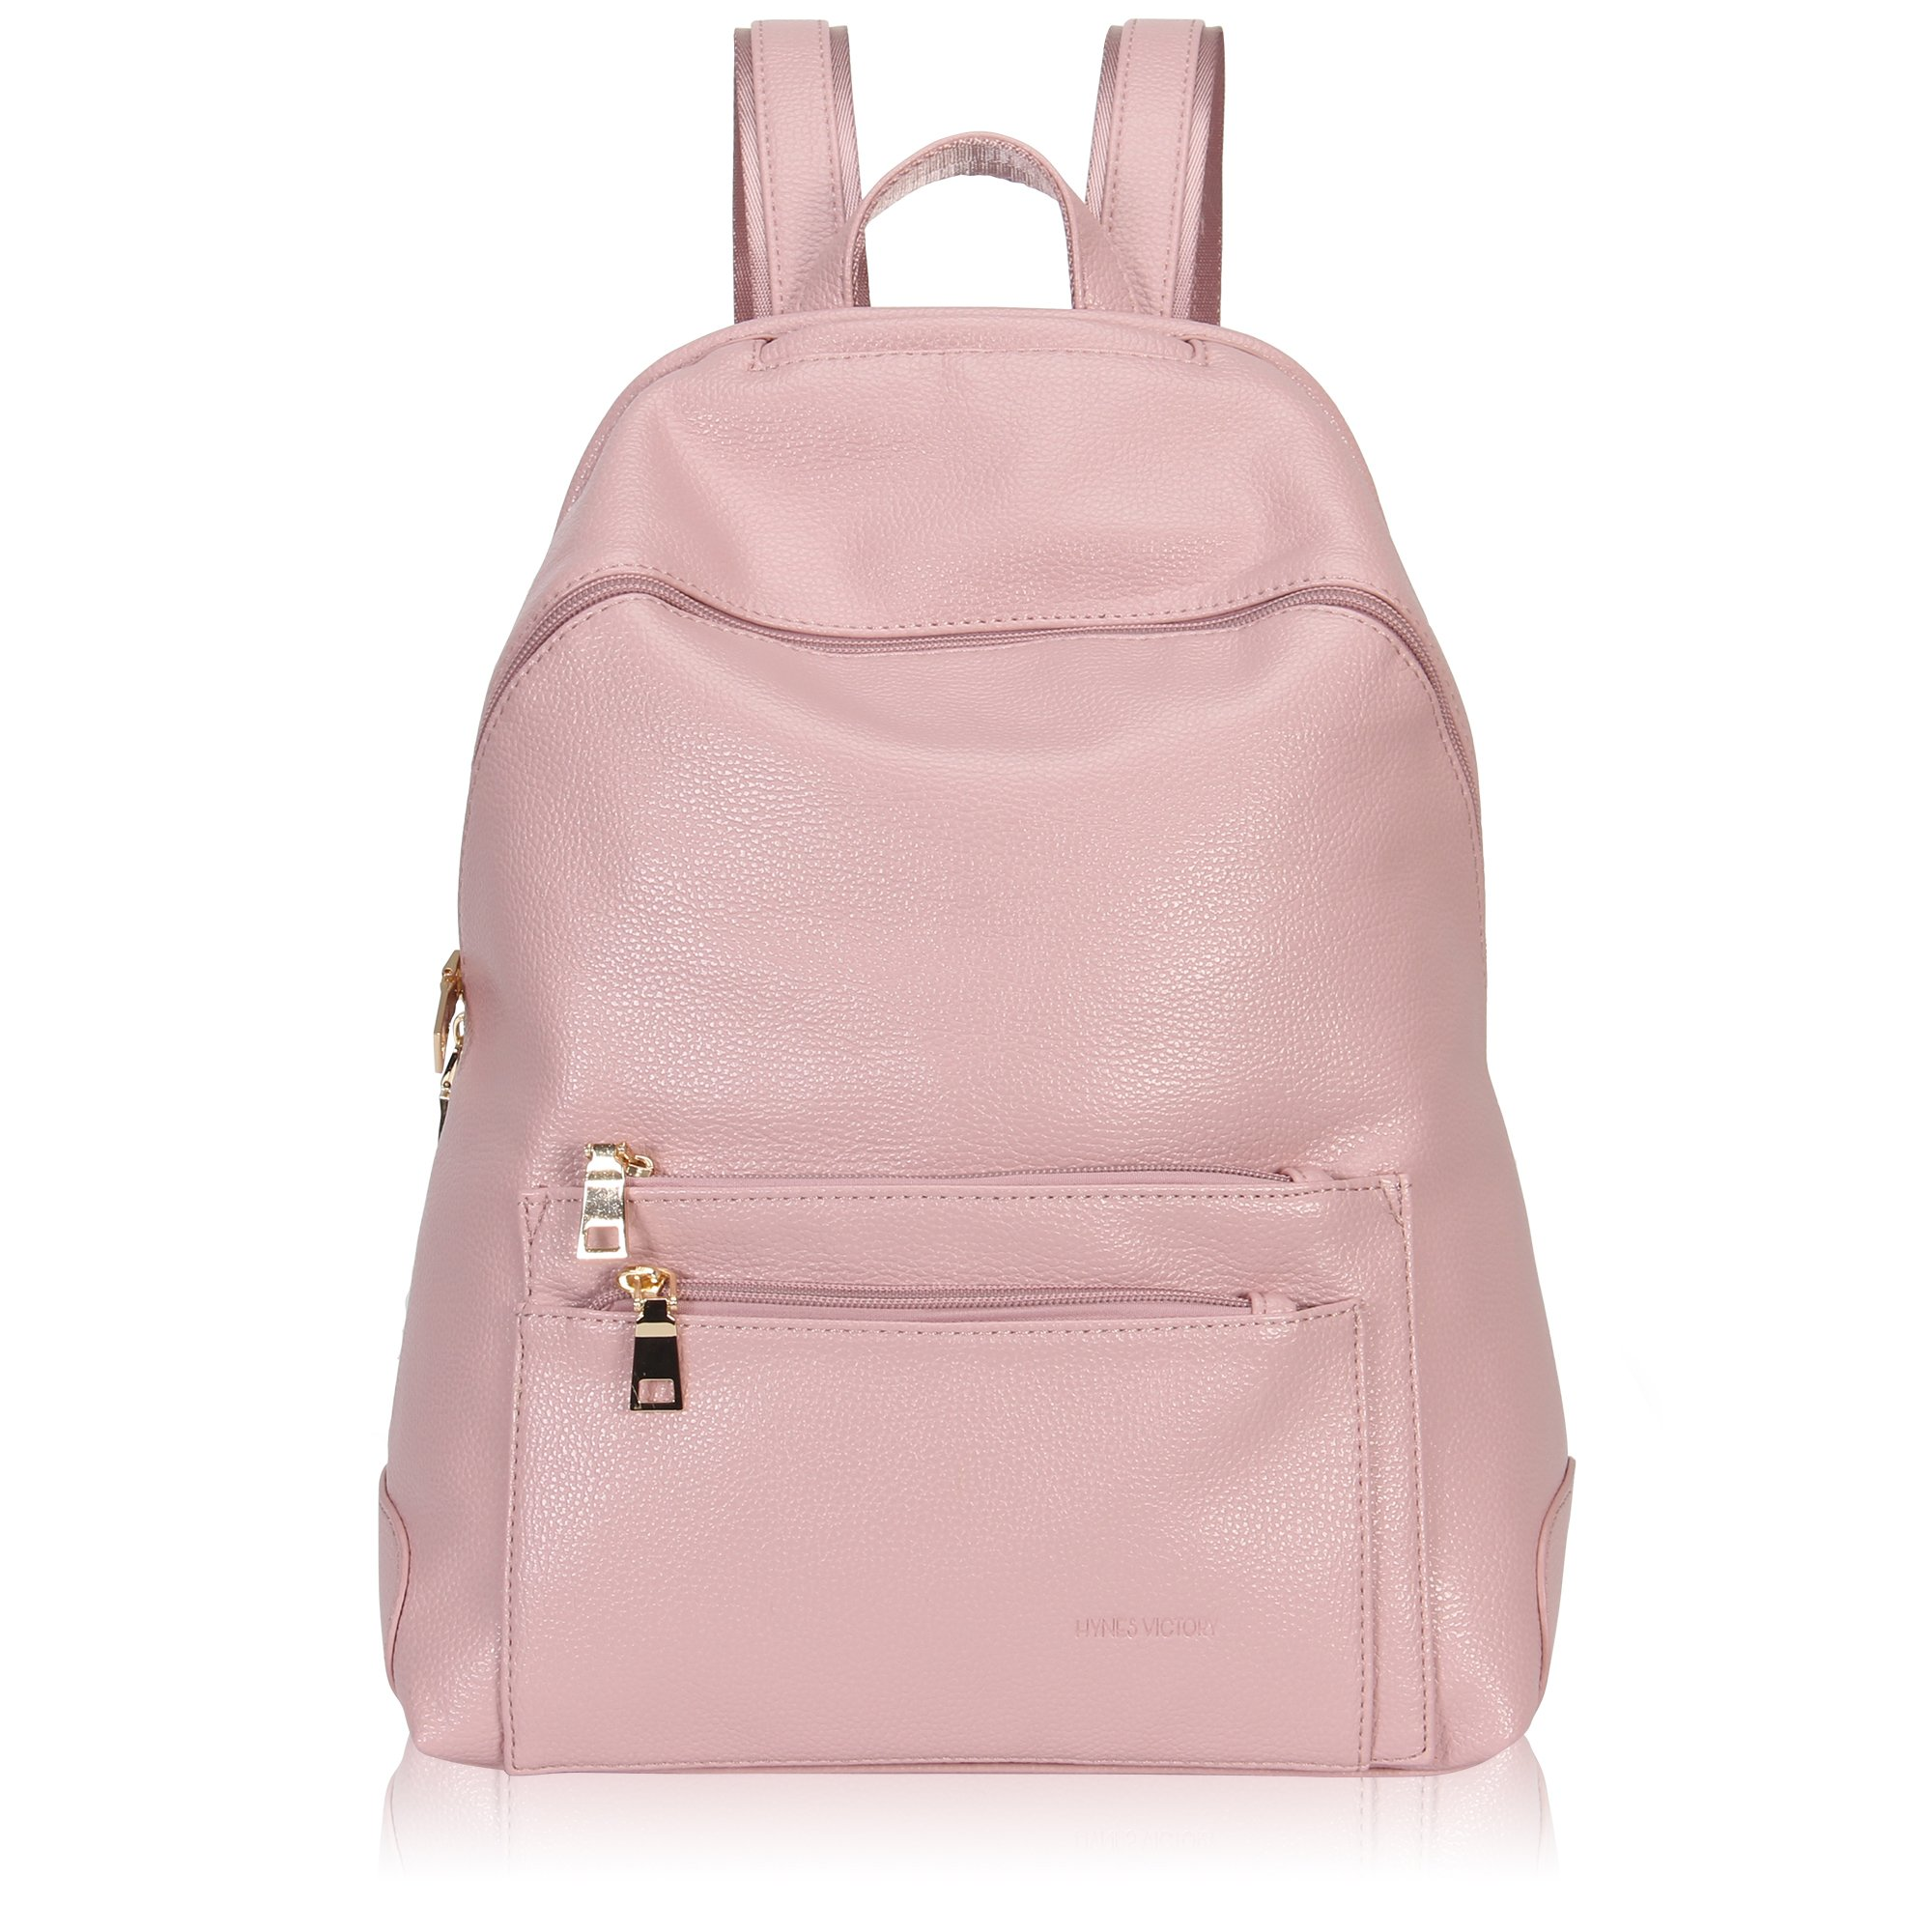 Hynes Victory Faux Leather Backpack for Women Dressy Campus Backpack Purse Lotus Pink by Hynes Victory